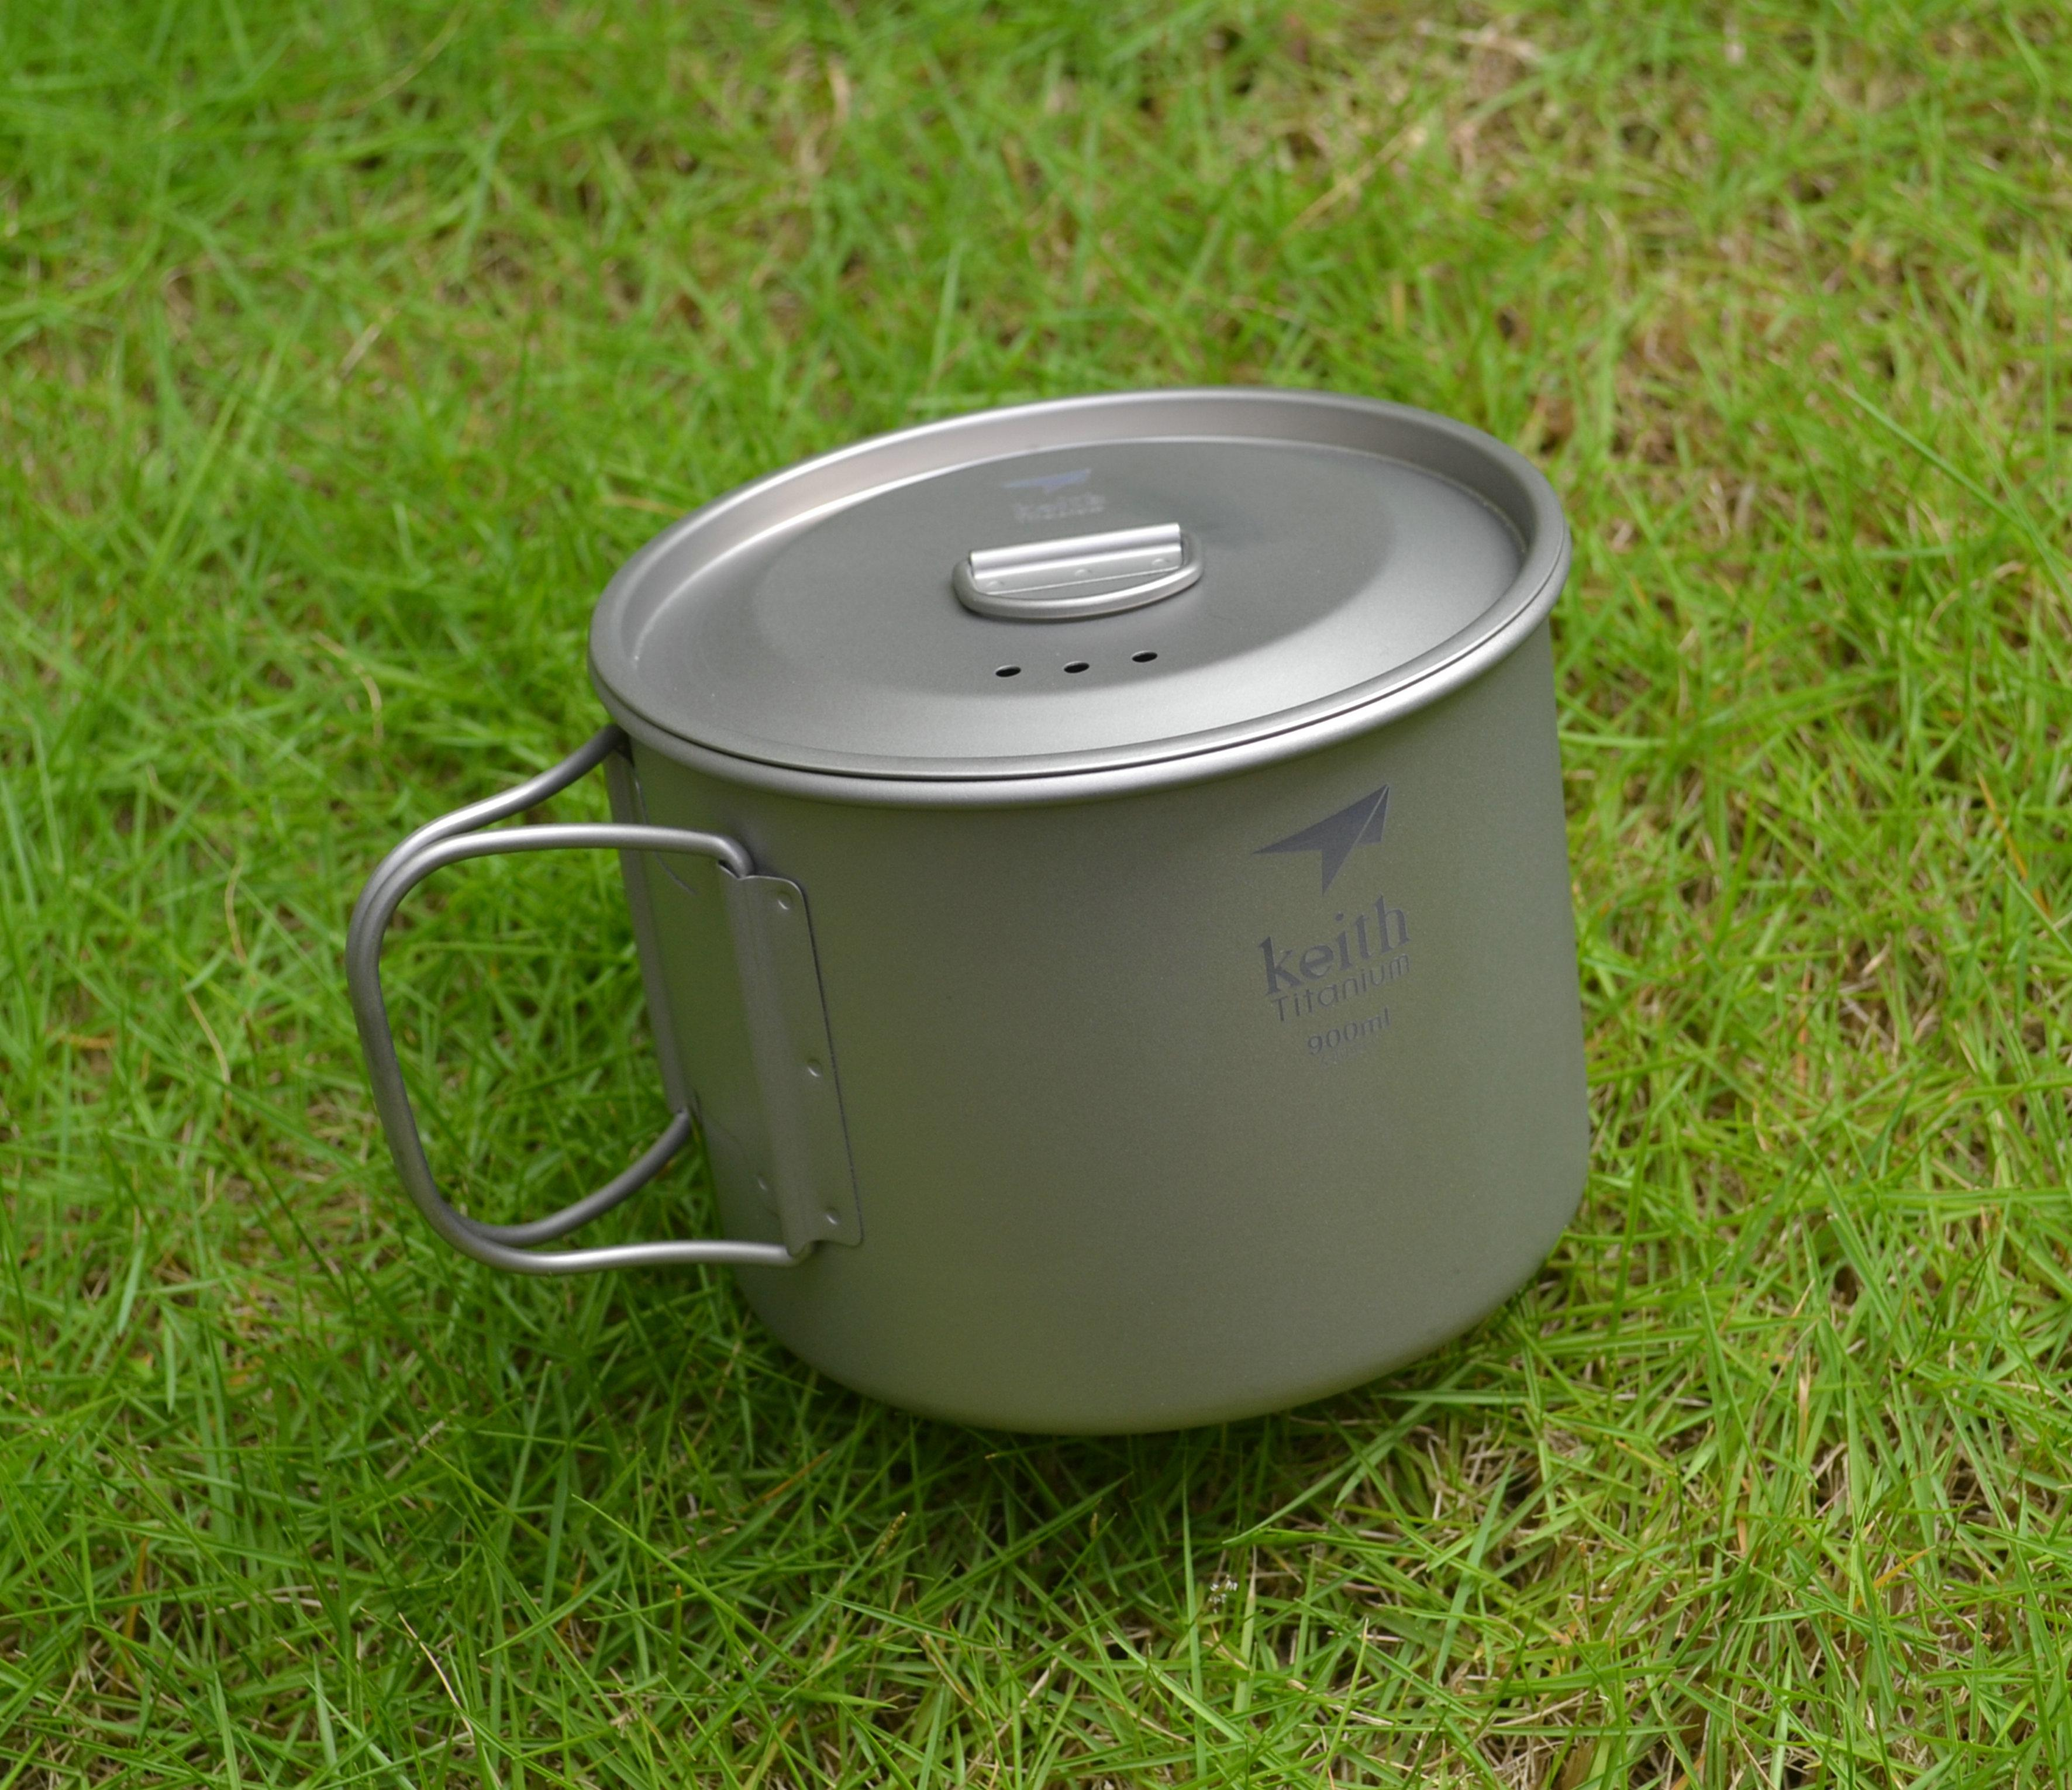 Keith 900ML Titanium Ti6300 Cooker Outdoor Camping Picnic Cooking Tool Portable